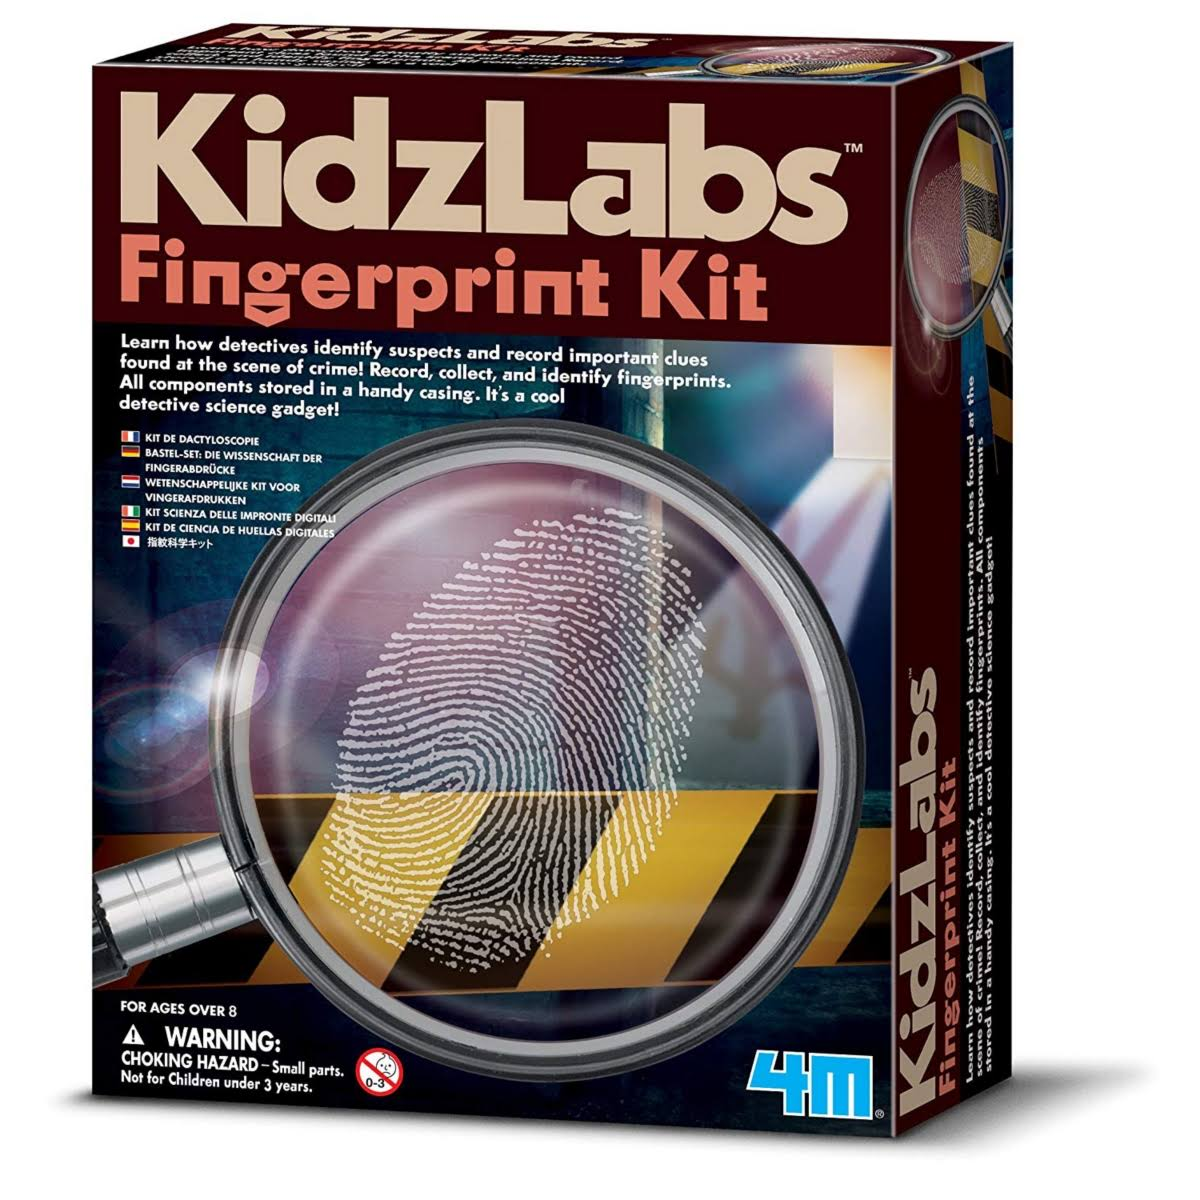 4M Detective Science Fingerprint Kit - Kidz Labs